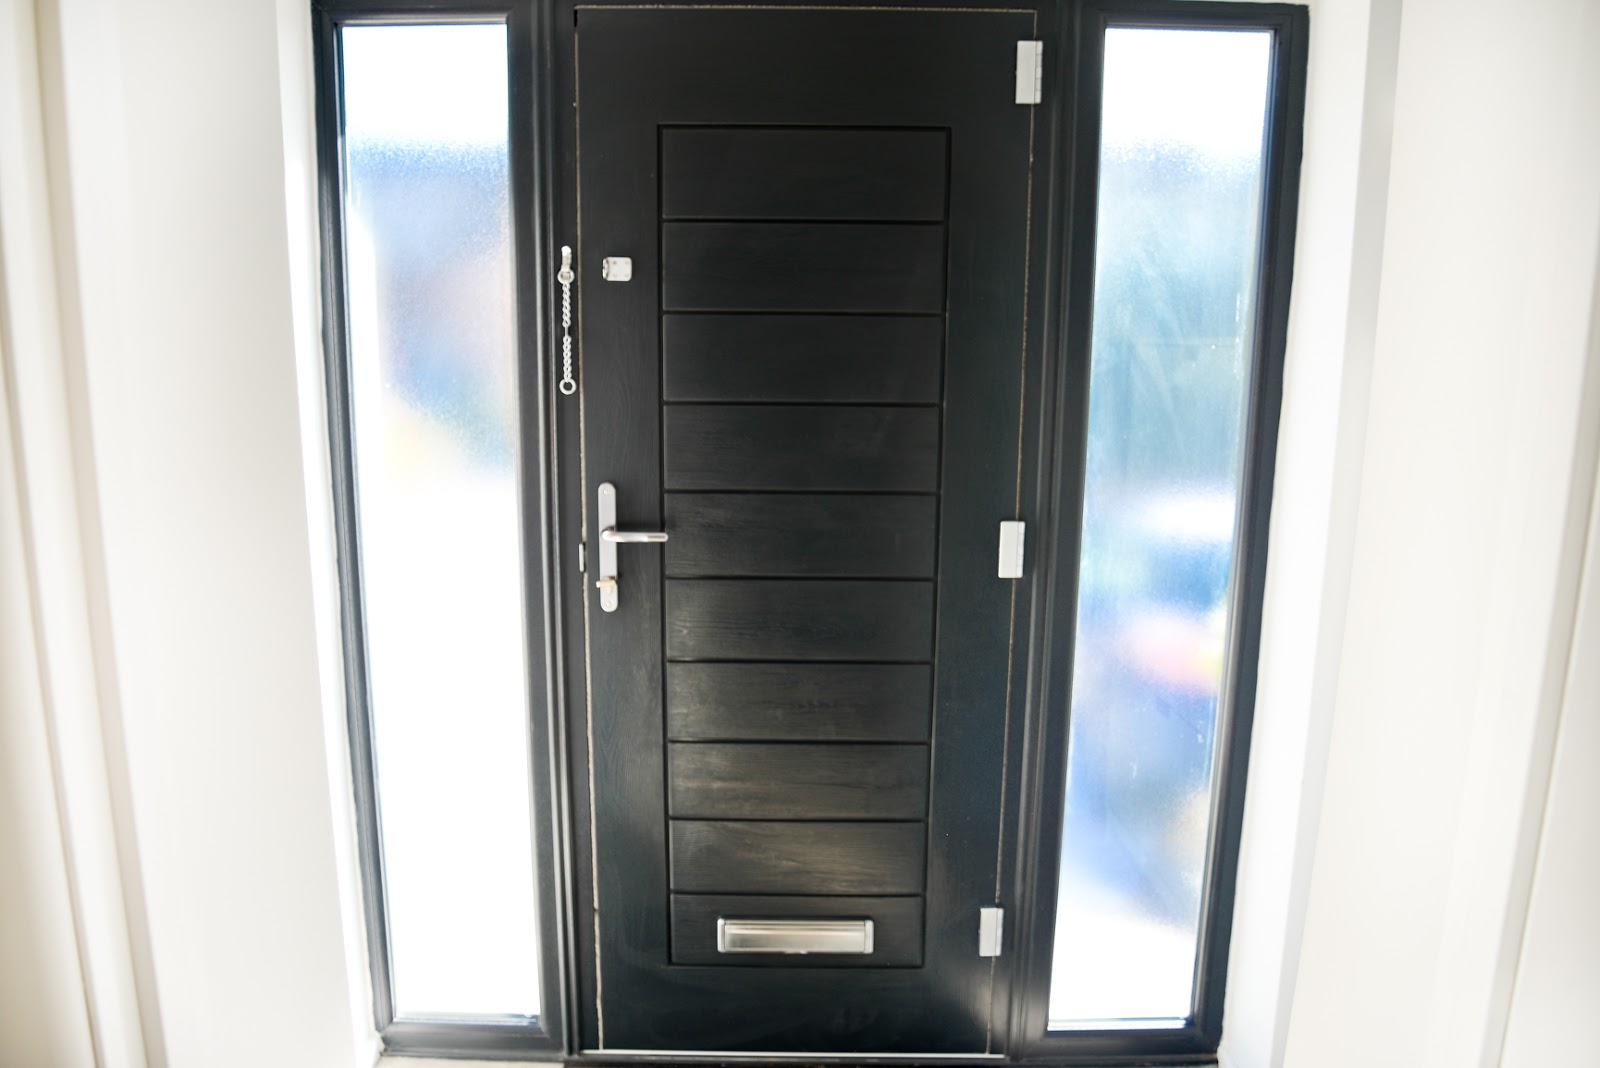 porch storage, entryway, entryway storage, entryway organisation, porch organisation, porch tour, entryway tour, composite door, shoe storage, coat storage, shoe organisation